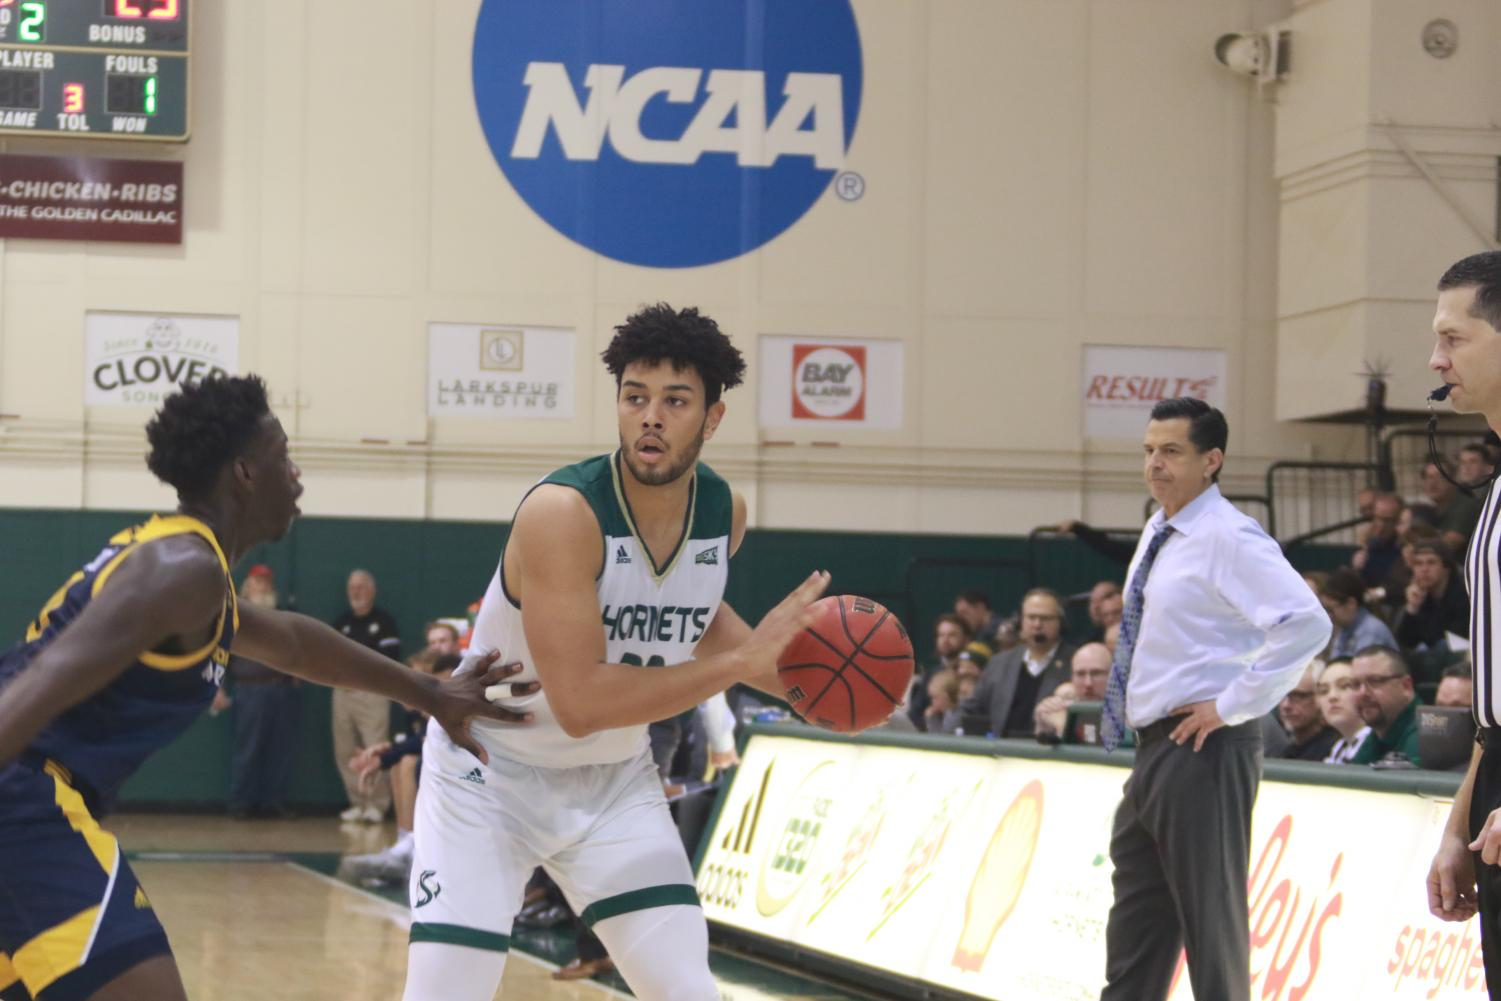 Sac State junior forward Ethan Esposito looks for a teammate to pass to against Northern Arizona on Thursday, Jan. 9 at the Nest. The Hornets defeated the Lumberjacks 64-57 on Thursday night.